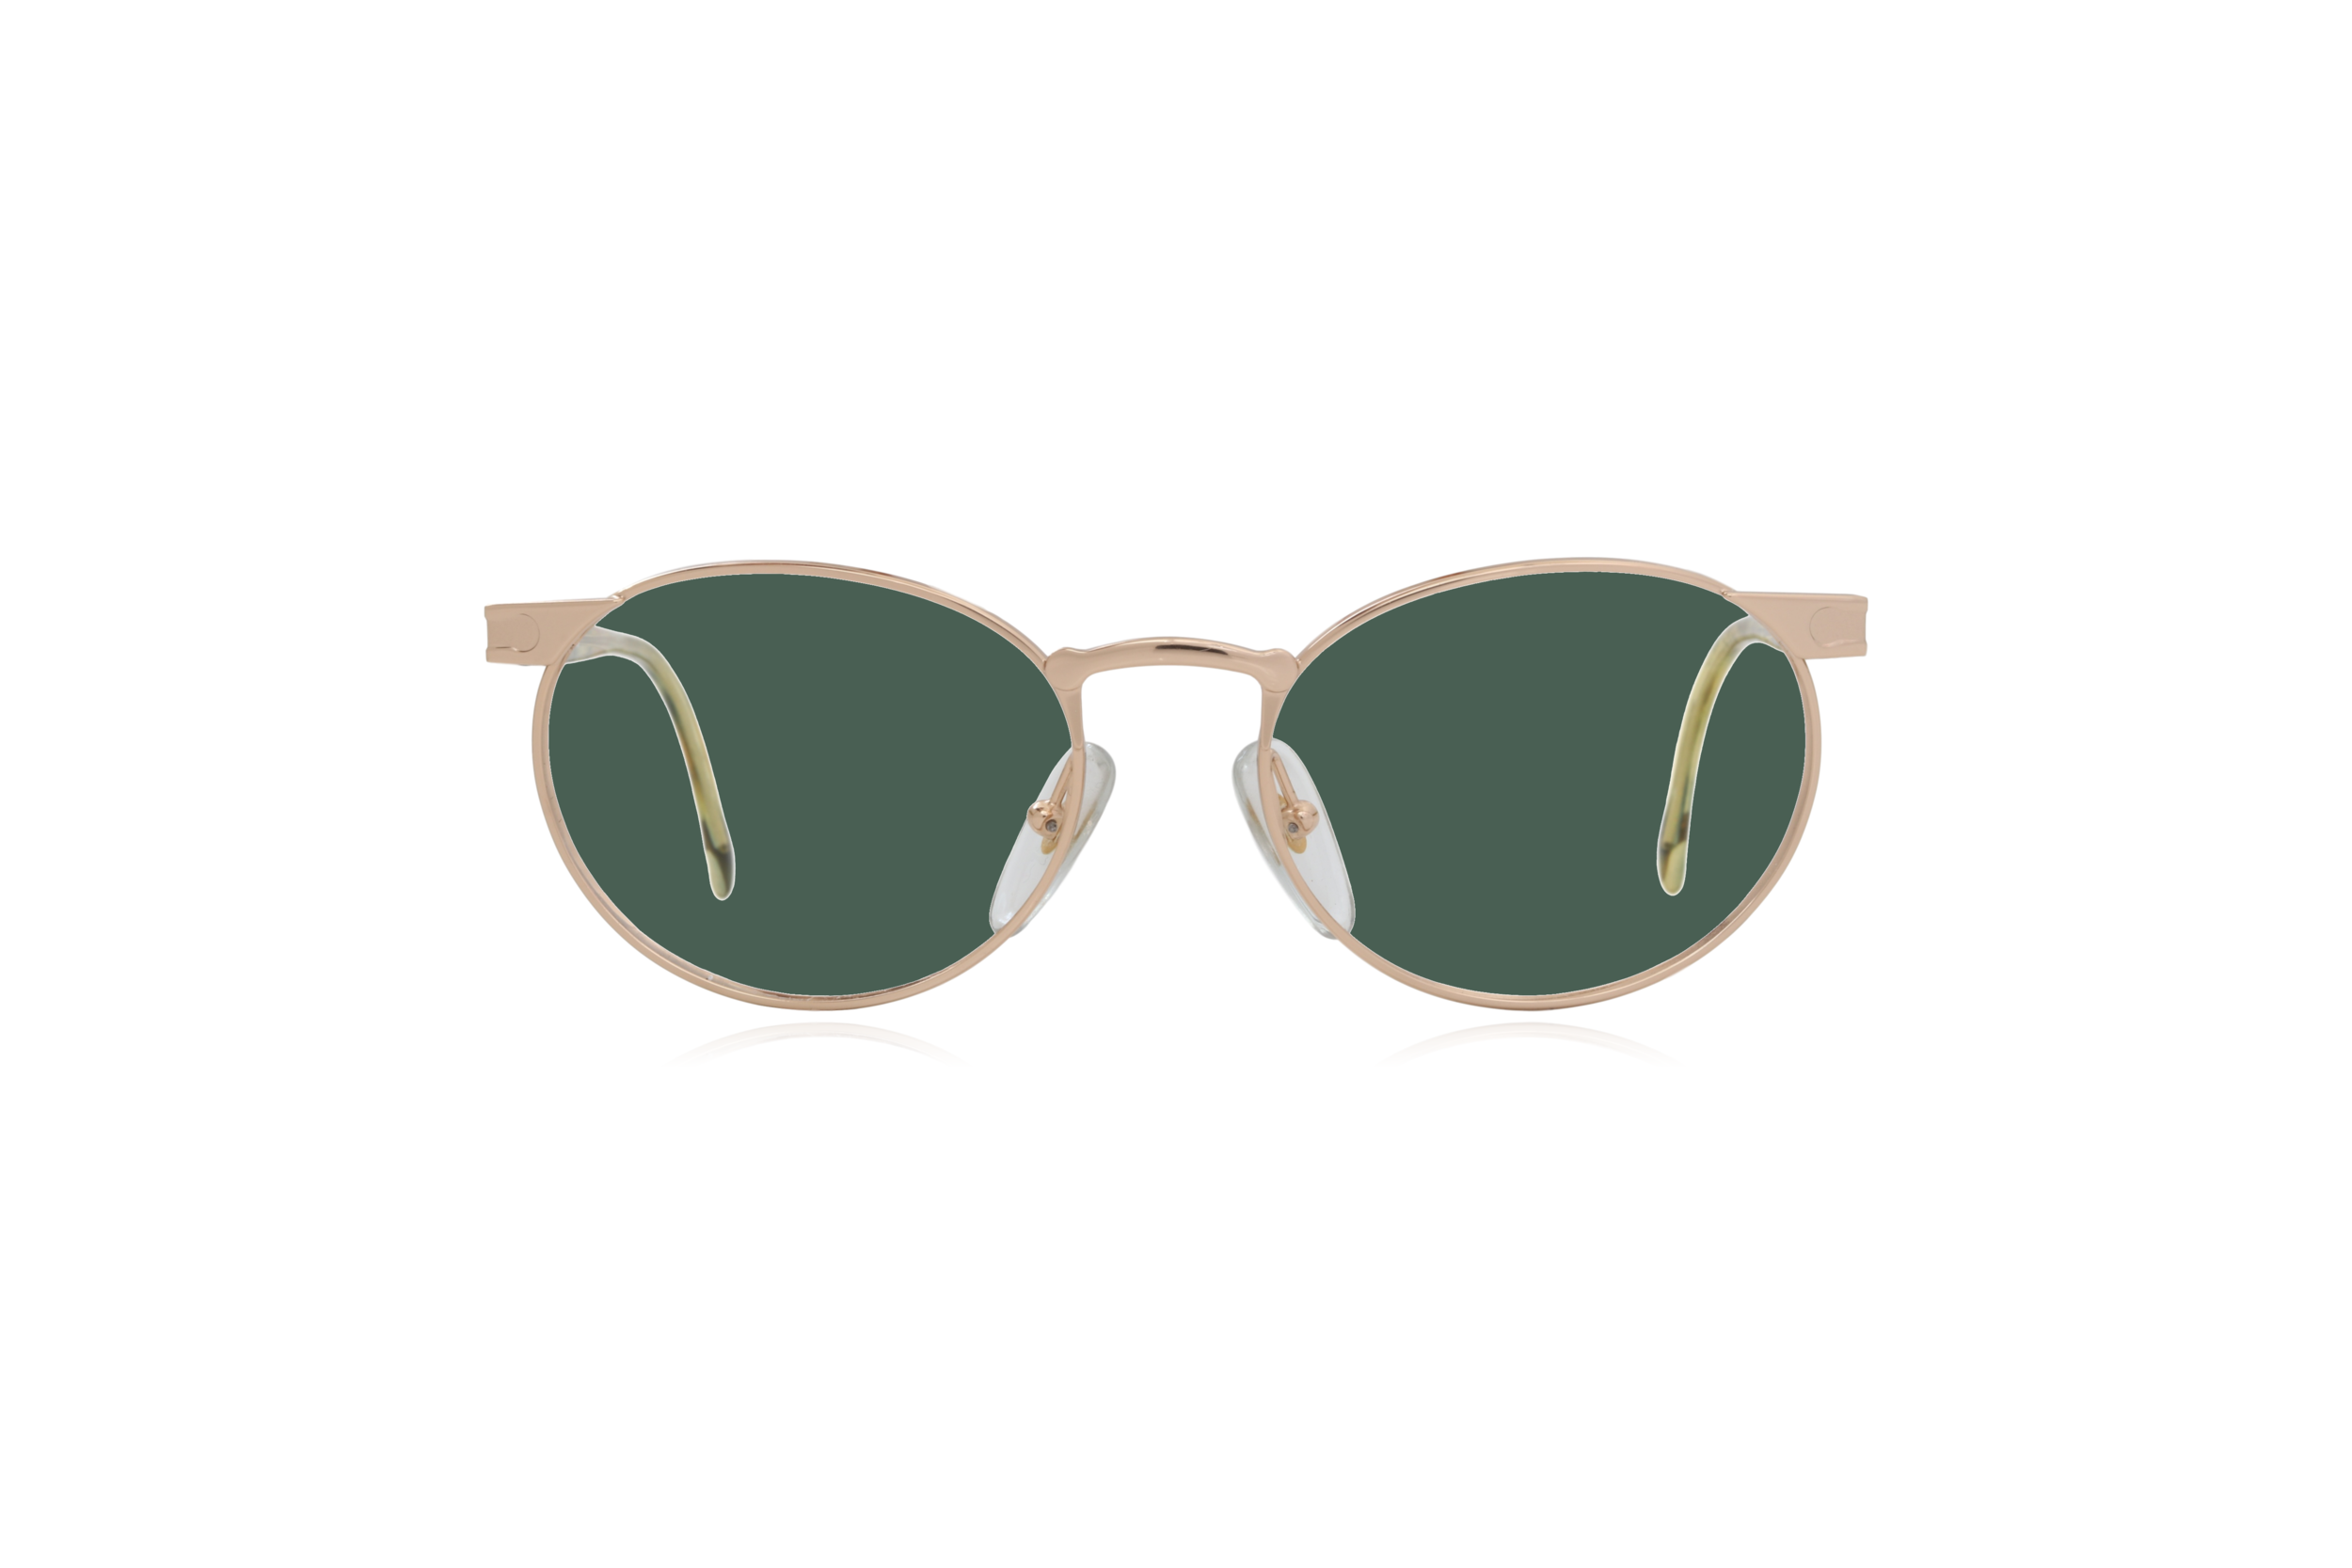 Peep Eyewear, Vintage Glasses, Hugo Boss 5131, Carrera, Green Lenses.png